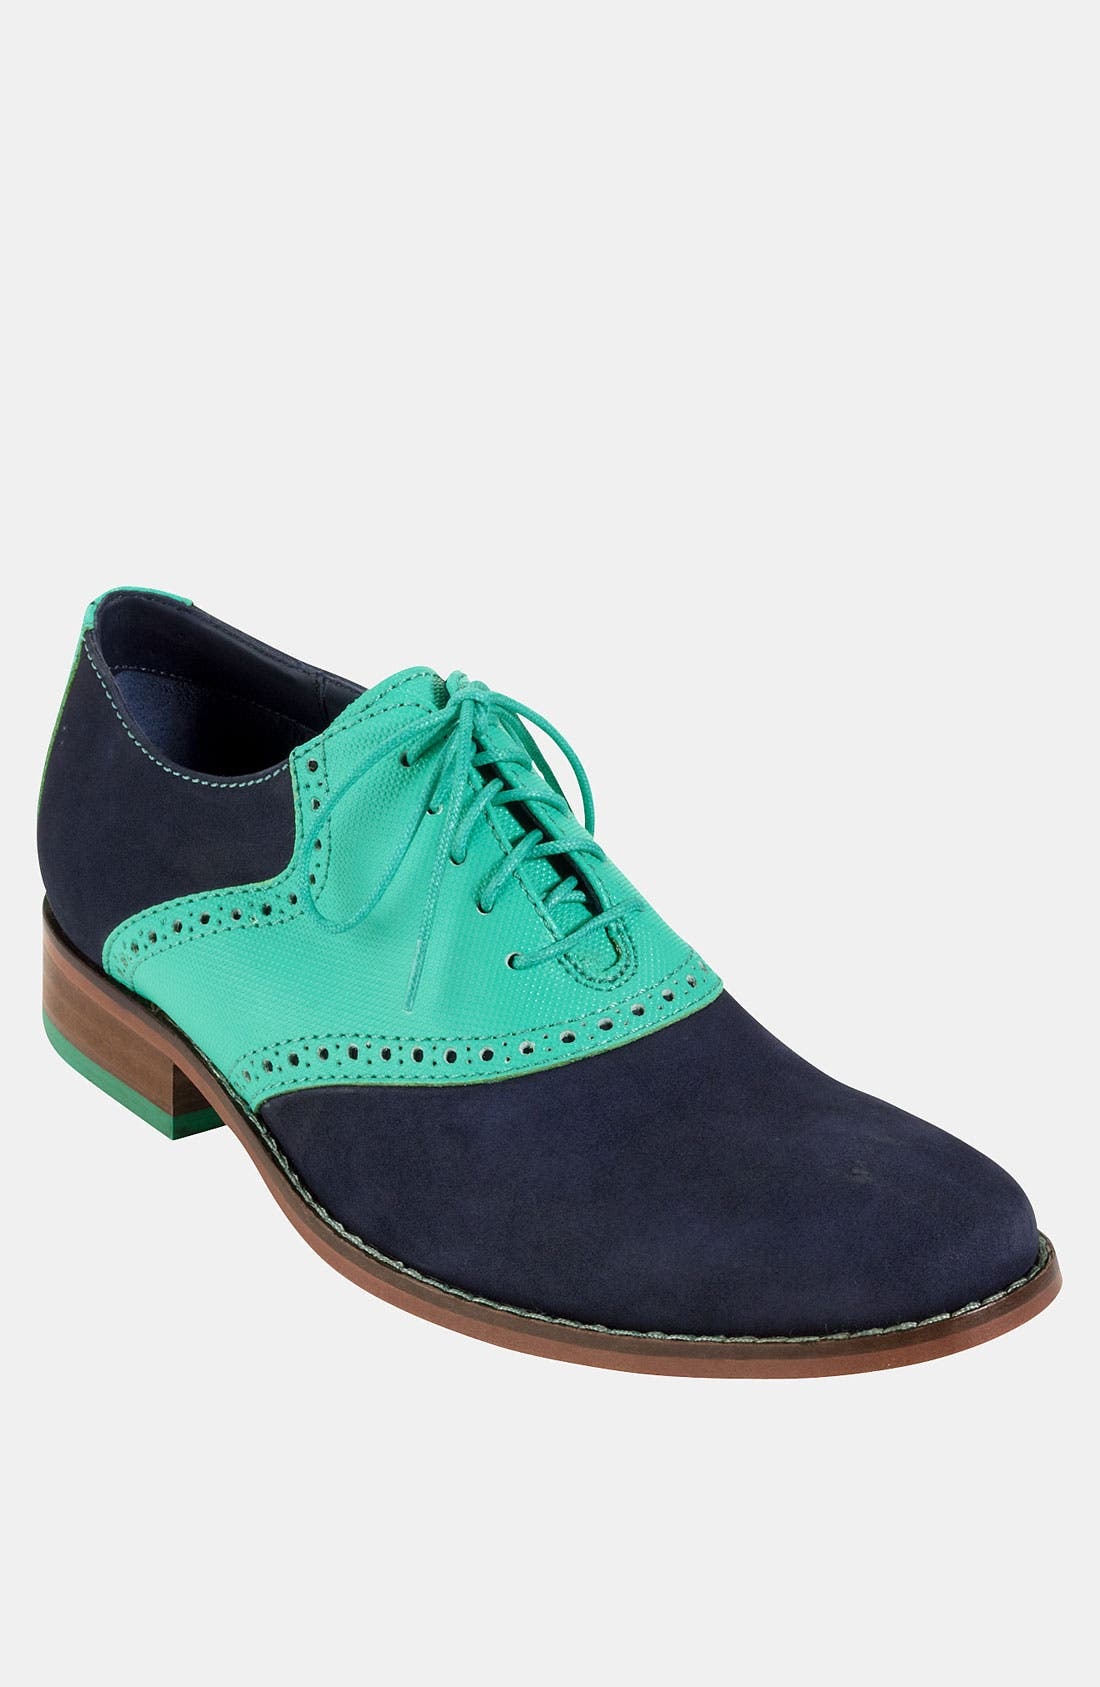 Alternate Image 1 Selected - Cole Haan 'Air Colton' Saddle Oxford